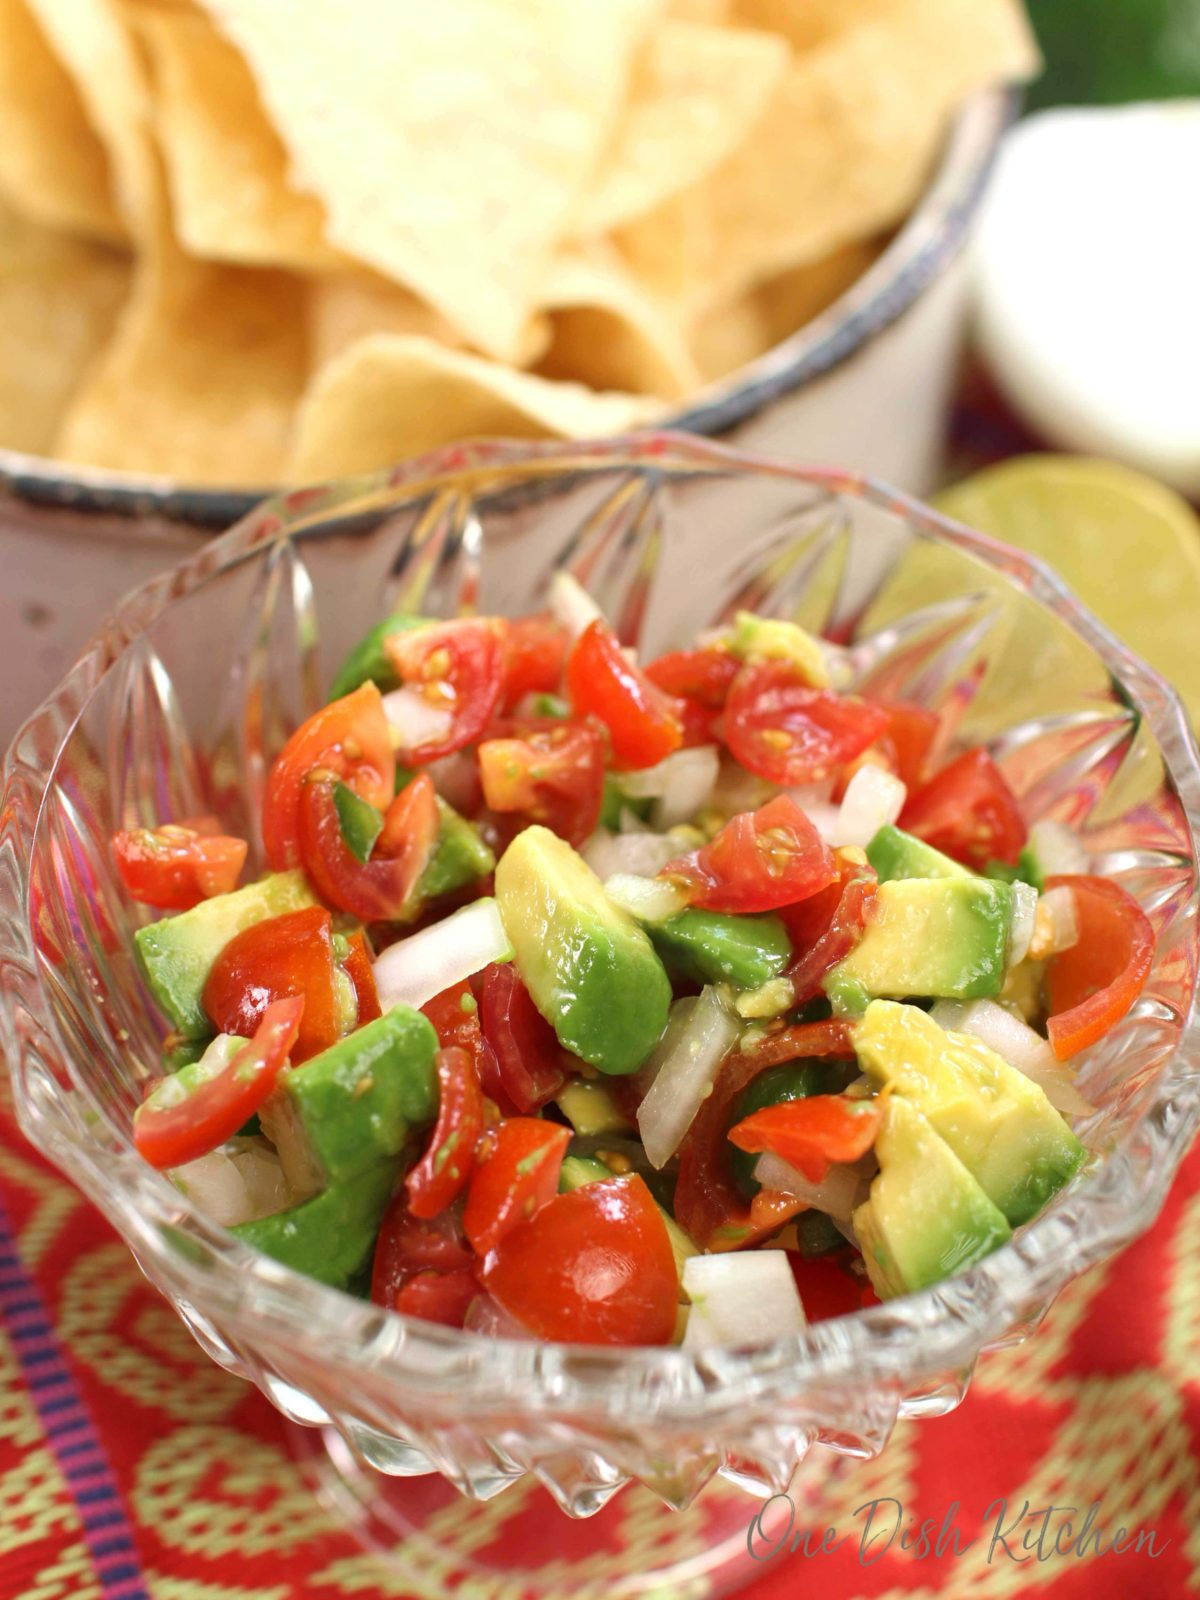 a clear bowl of pico de gallo with avocados and tomatoes next to a bowl of tortilla chips.